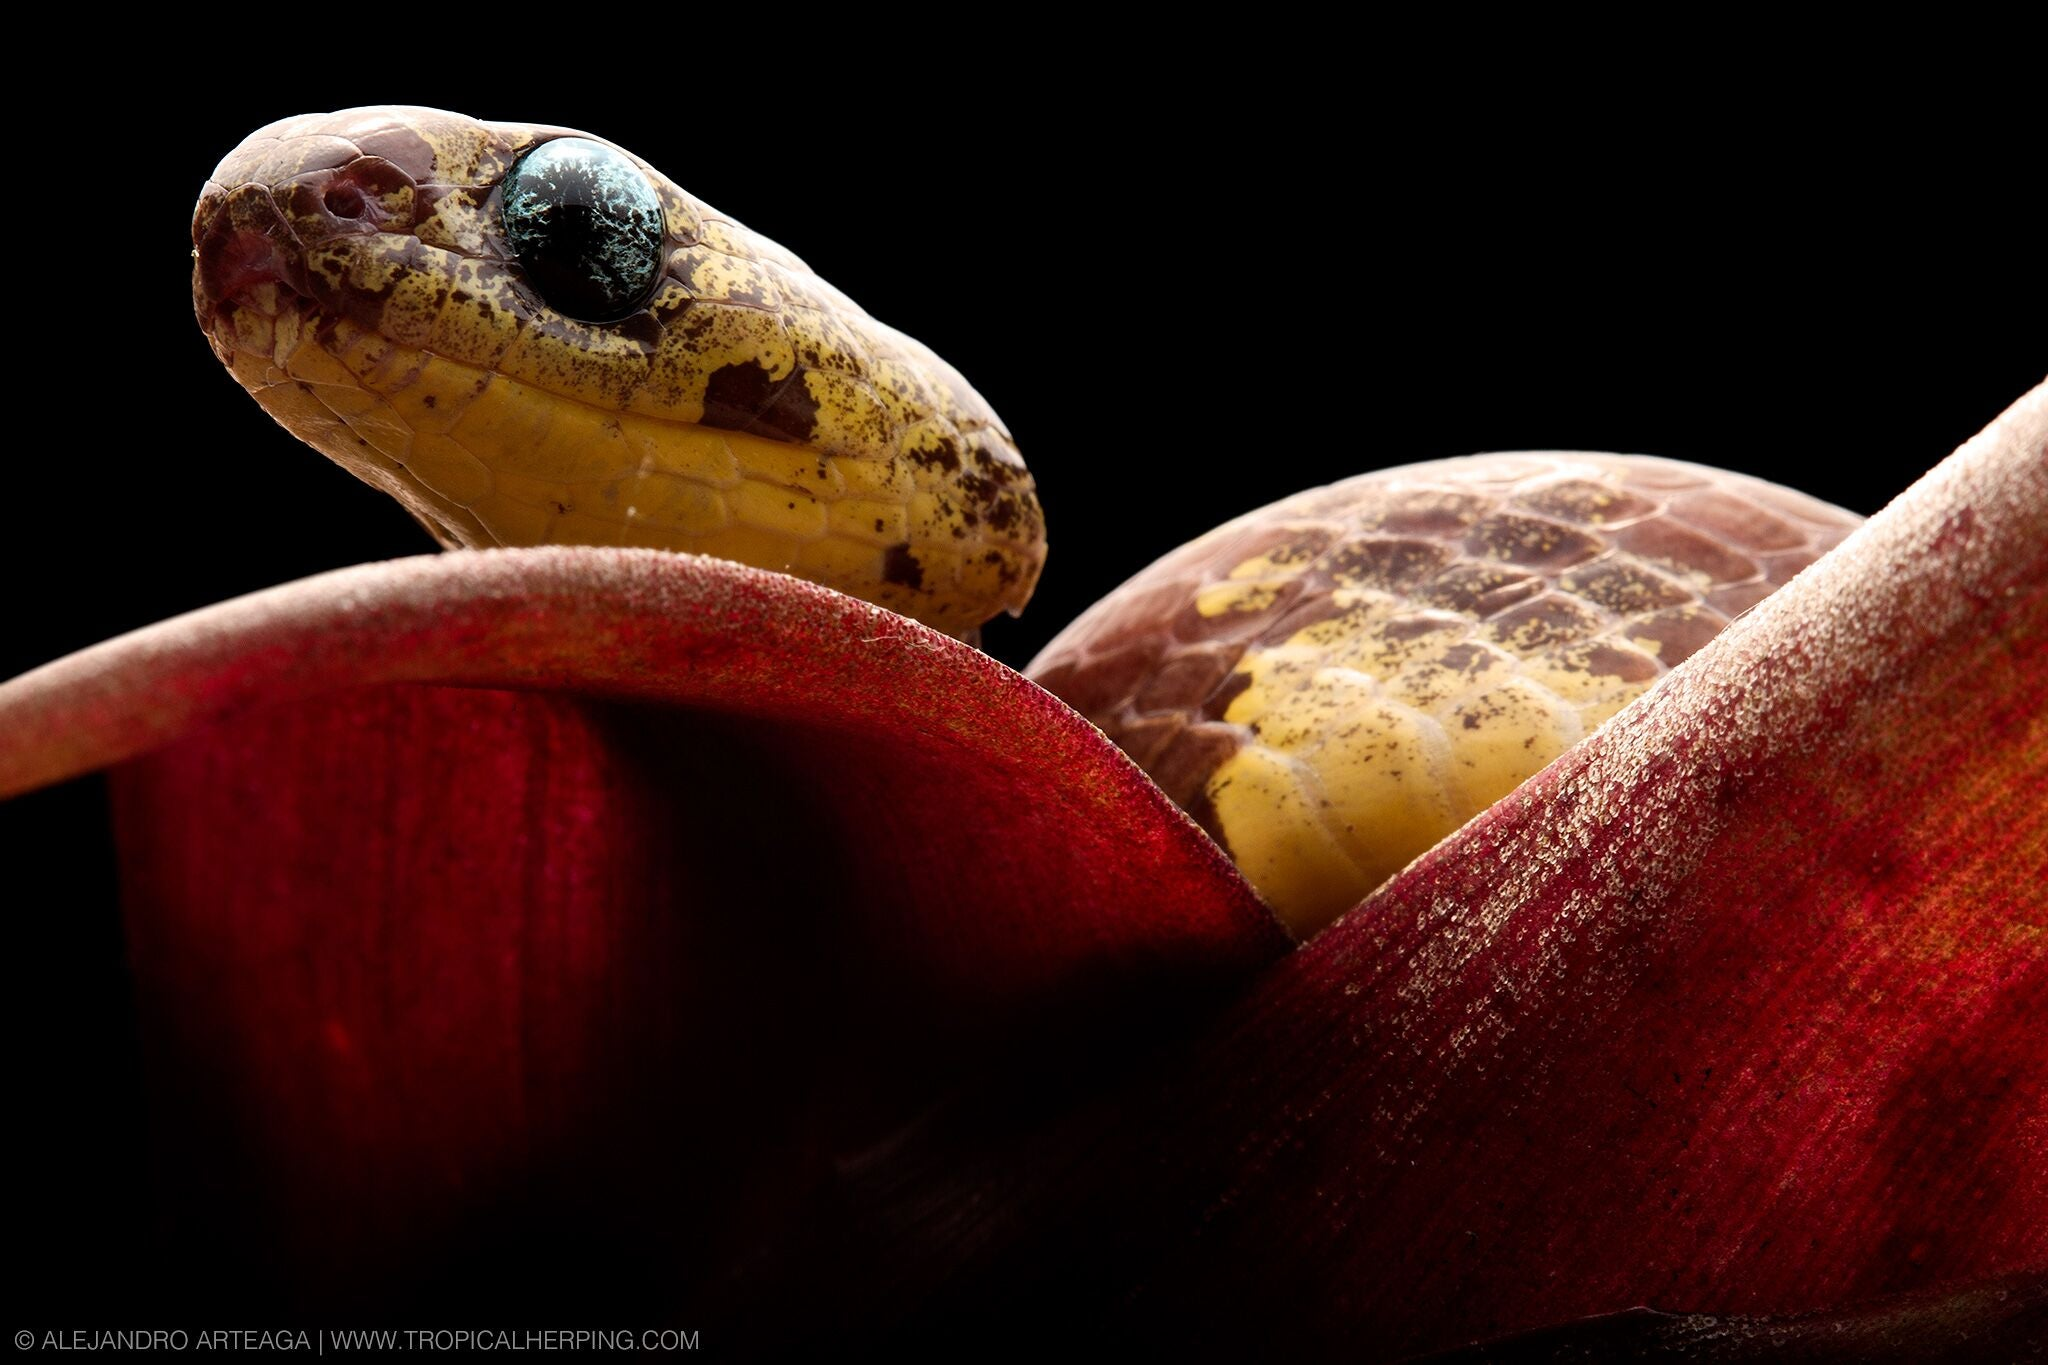 These snakes slurp snails, and that's great for farmers